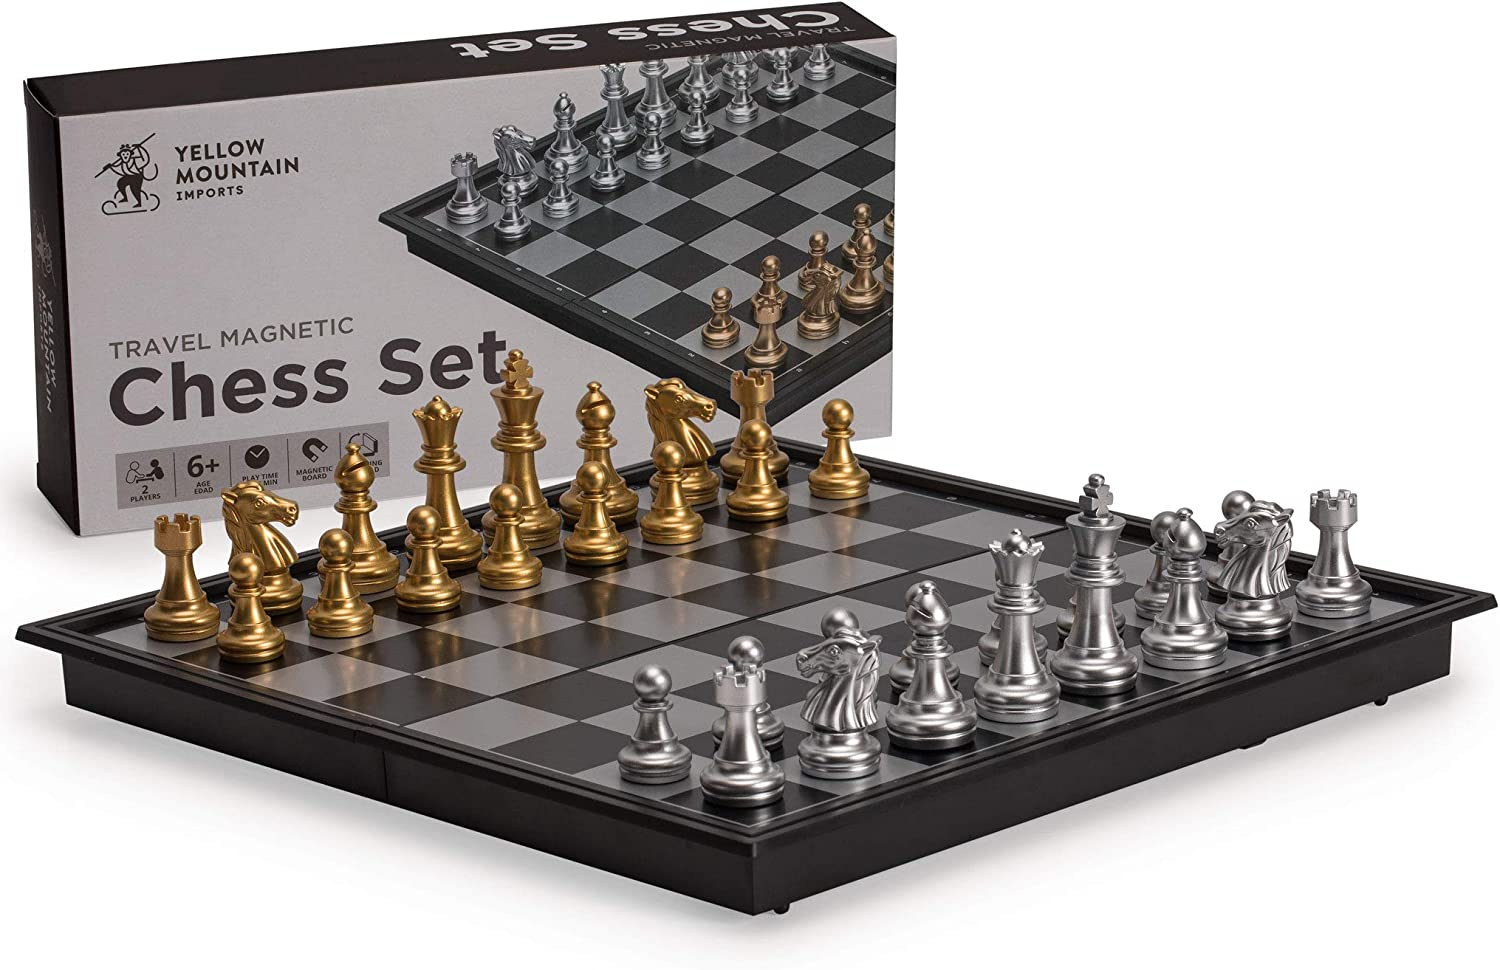 Amazon Com Yellow Mountain Imports Travel Magnetic Chess Set 9 7 Inches Folding Portable And Educational Board Game Toys Games